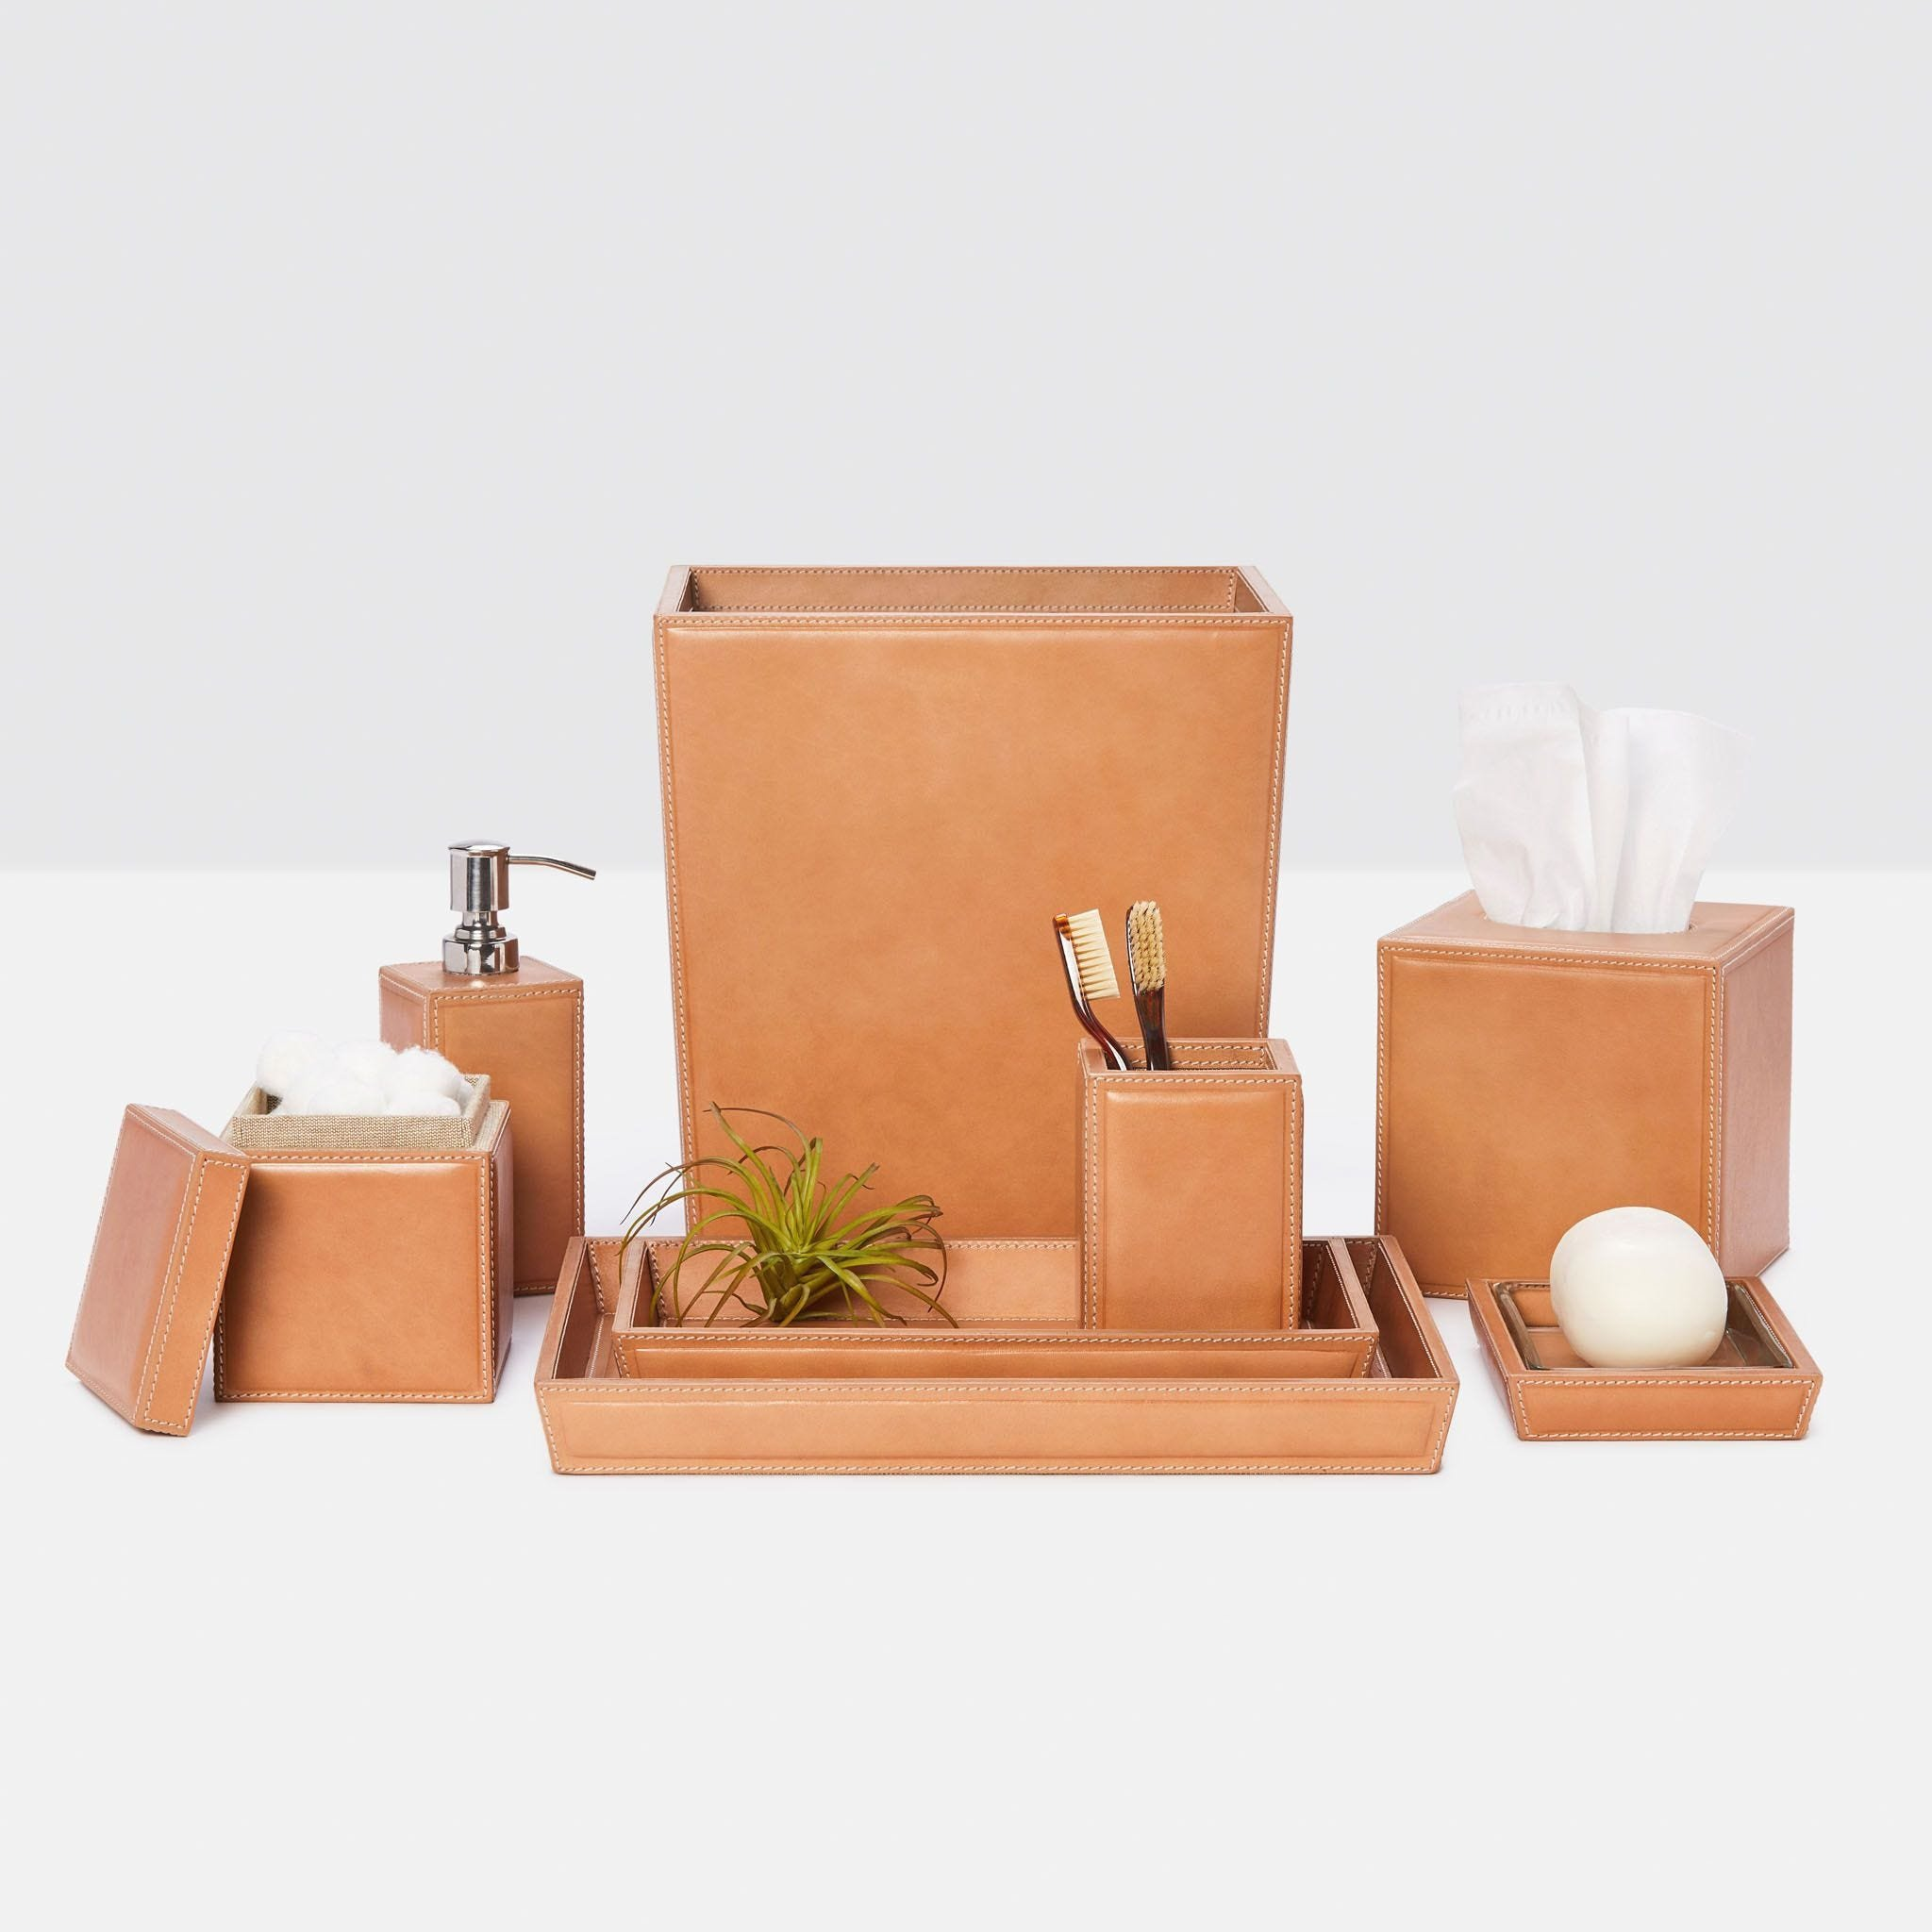 Lorient Aged Camel Leather Bathroom, Bathroom Collection Set